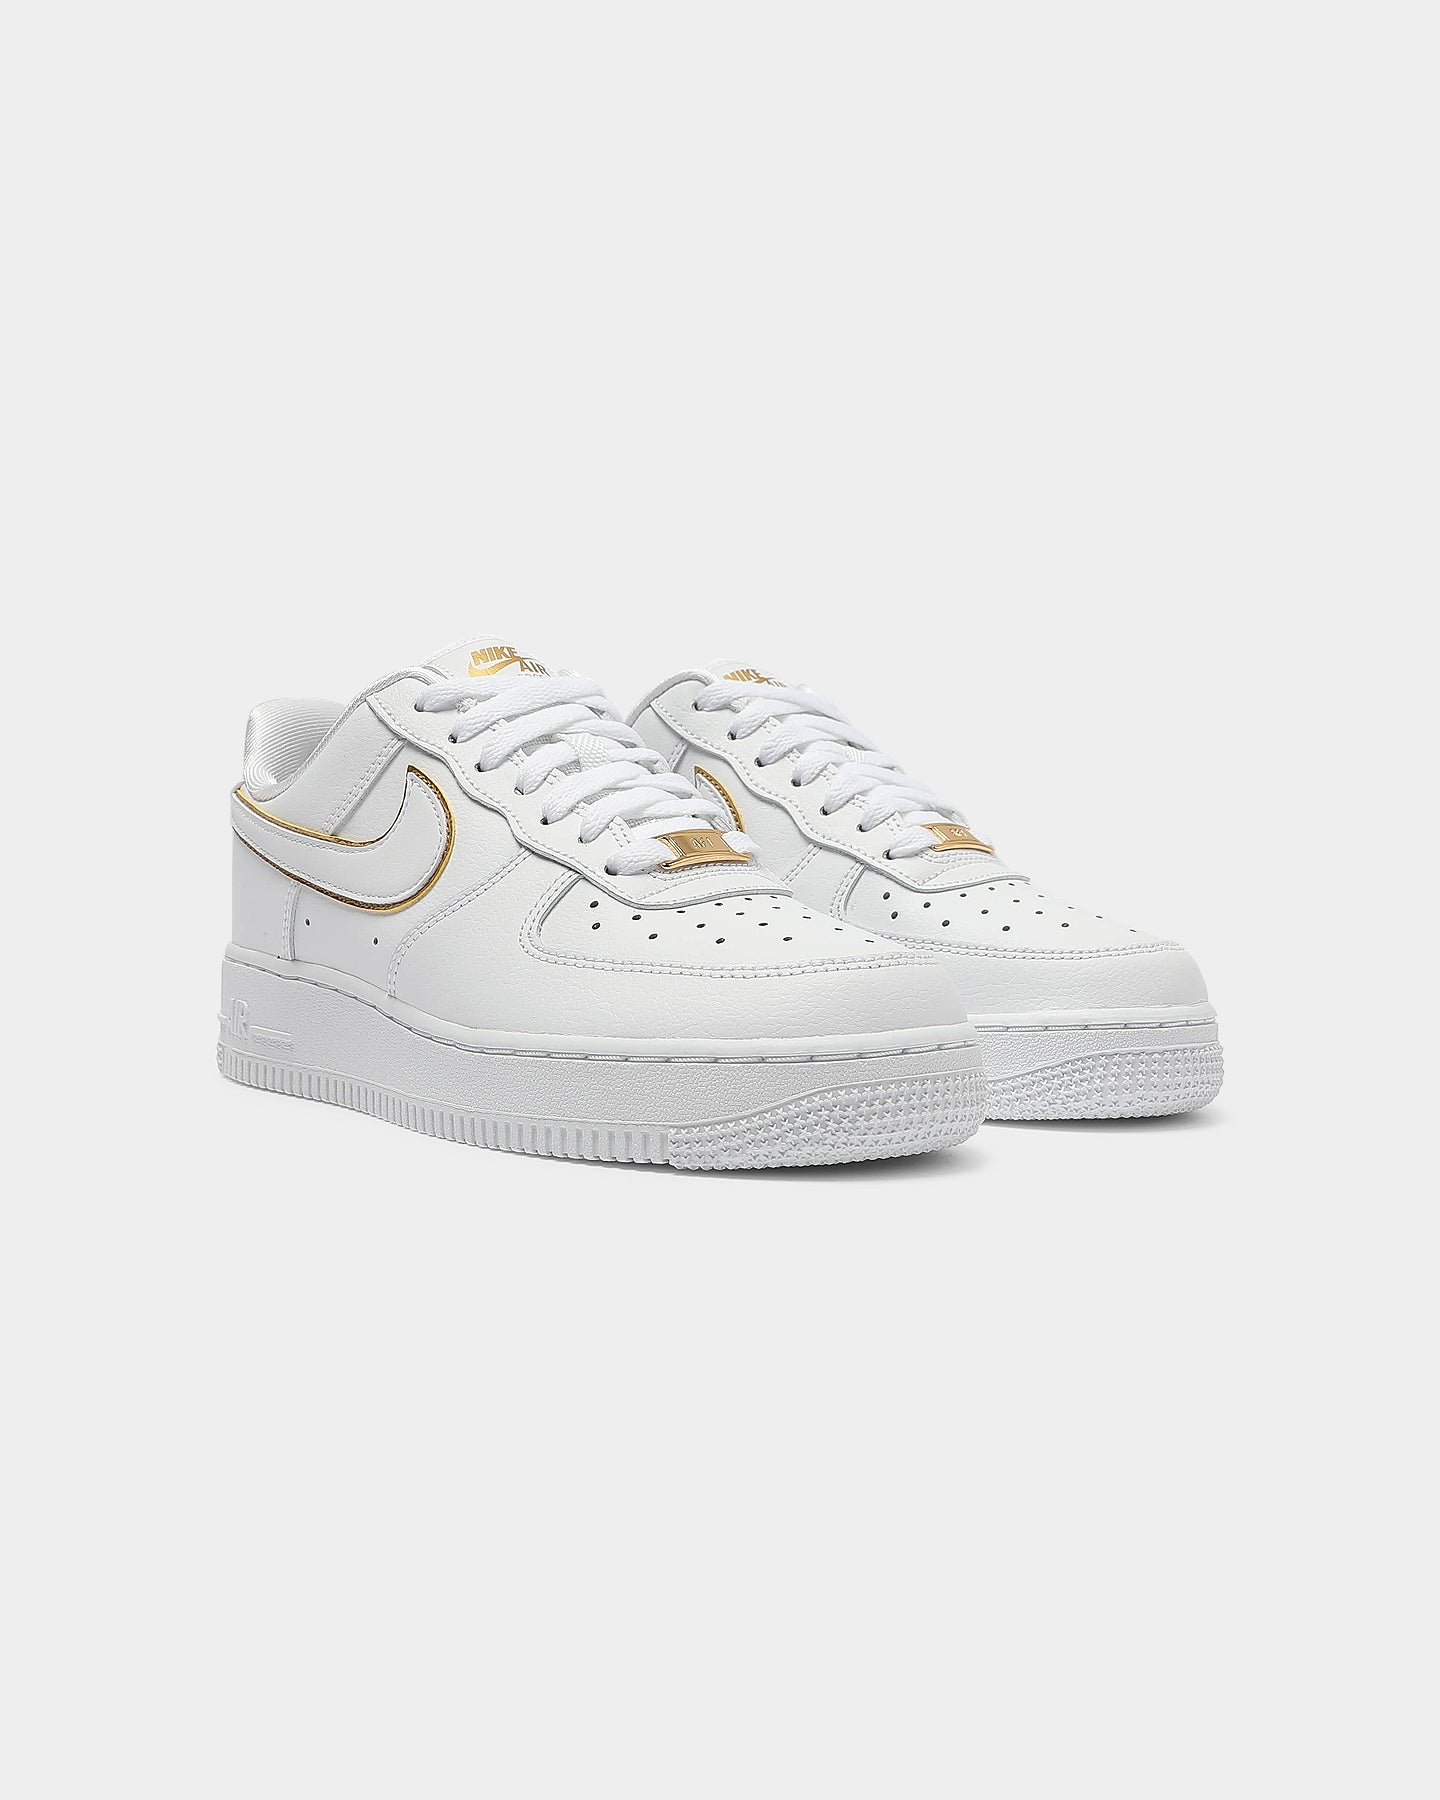 Nike Women's Air Force 1 '07 Essential WhiteGold